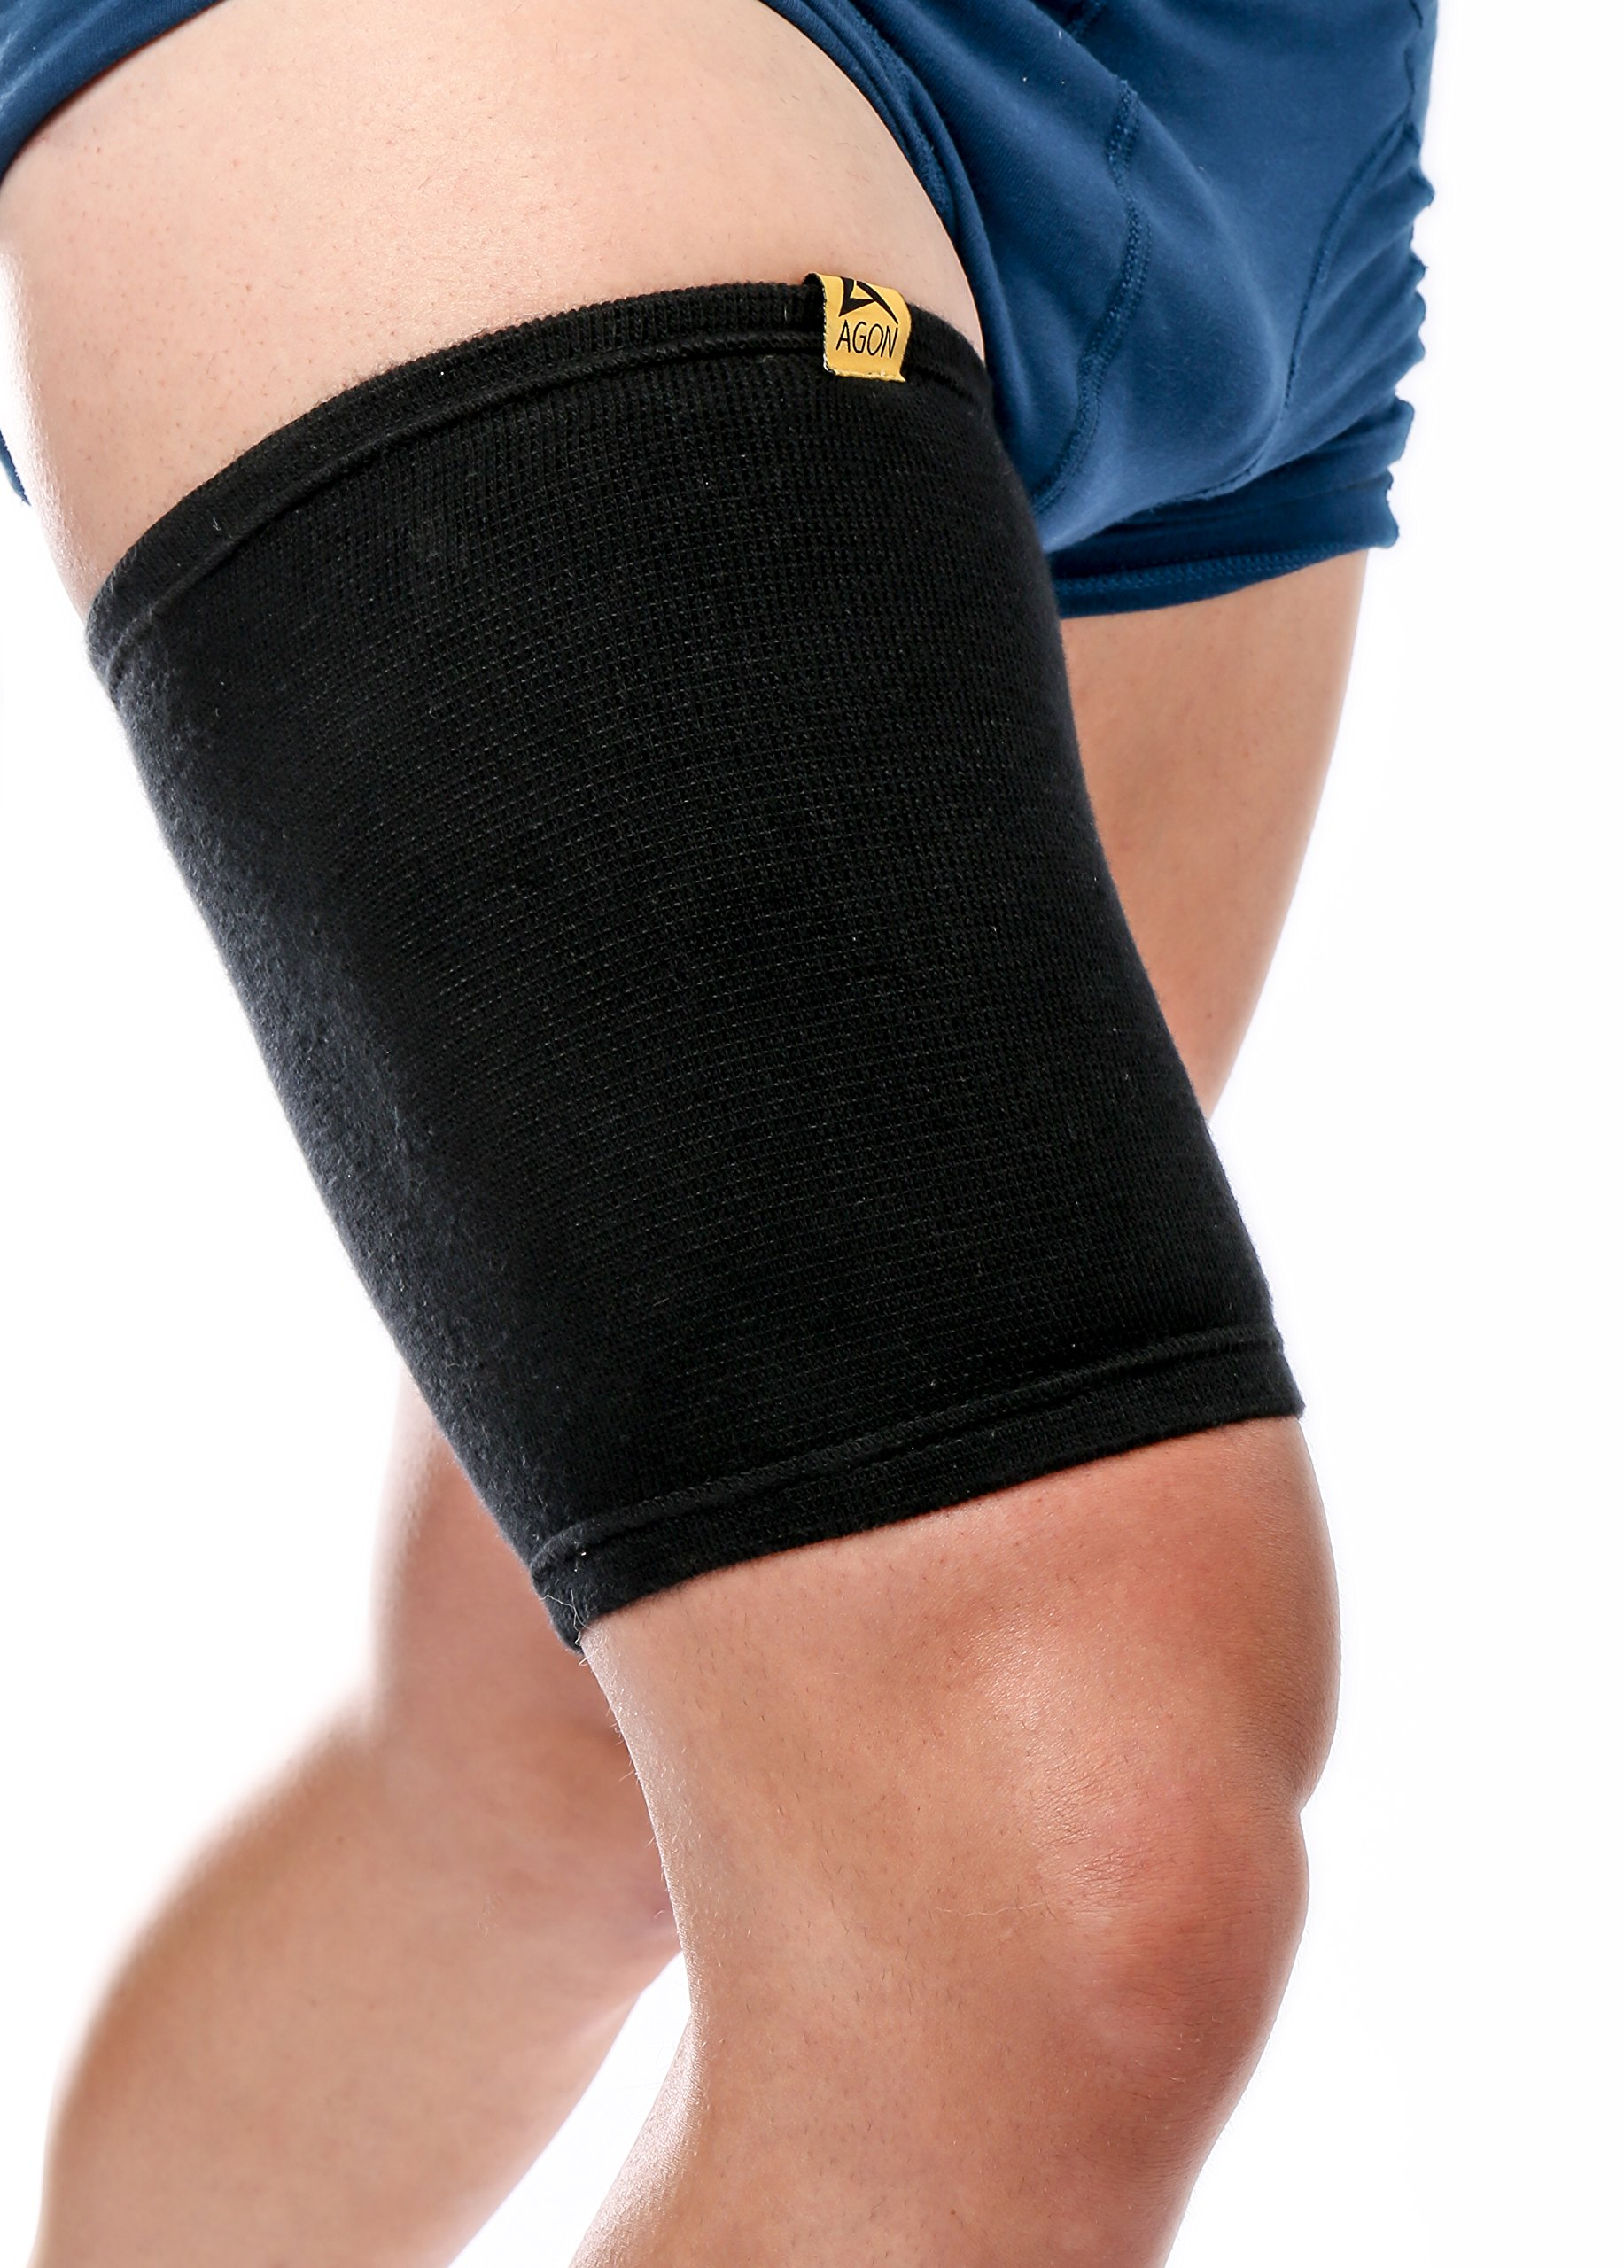 AGON Thigh Compression Sleeve Brace Support Compression Recovery Thighs Wrap Pain Relief for Sore Hamstring Groin Quad Sweat Men & Women Hip Injury Thigh Compressions Trimmer Active Sports (Small) by AGON